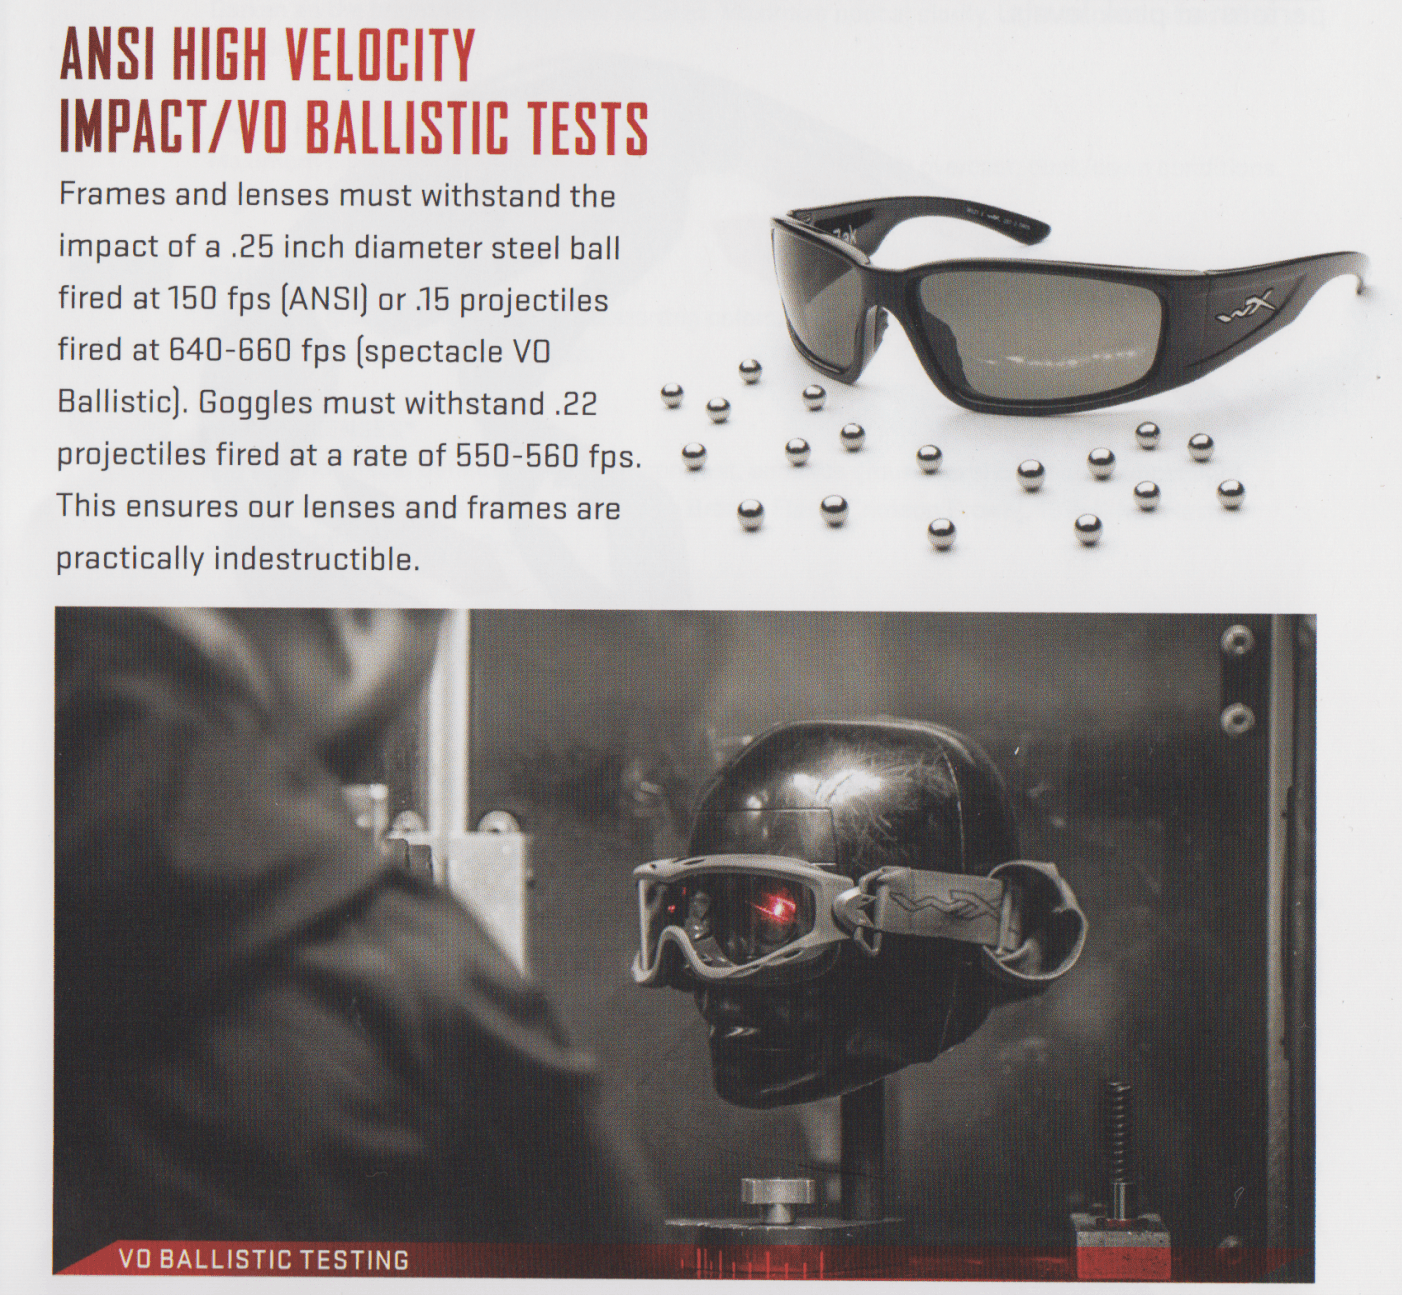 Wiley-X Safety testing frames